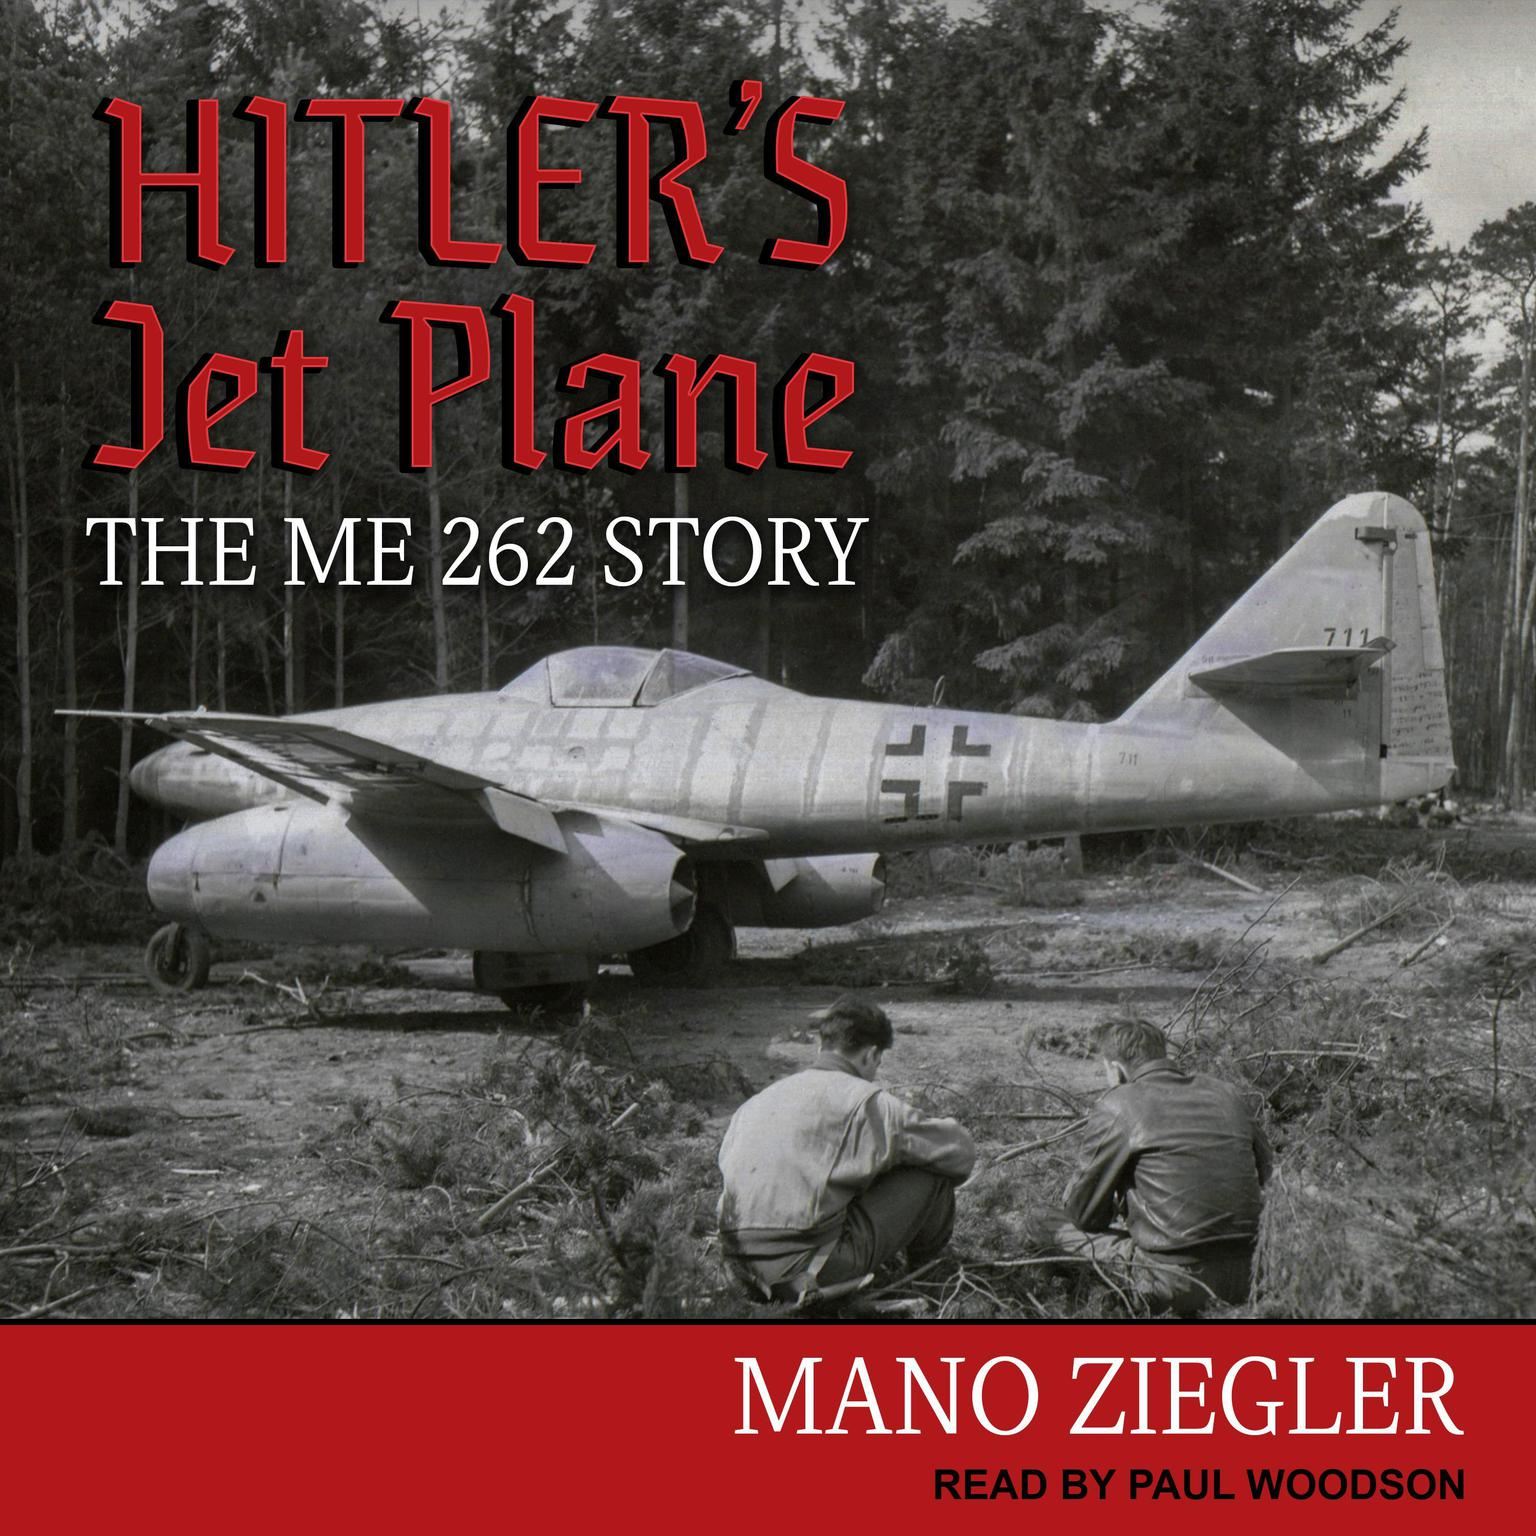 Hitlers Jet Plane: The ME 262 Story Audiobook, by Mano Ziegler